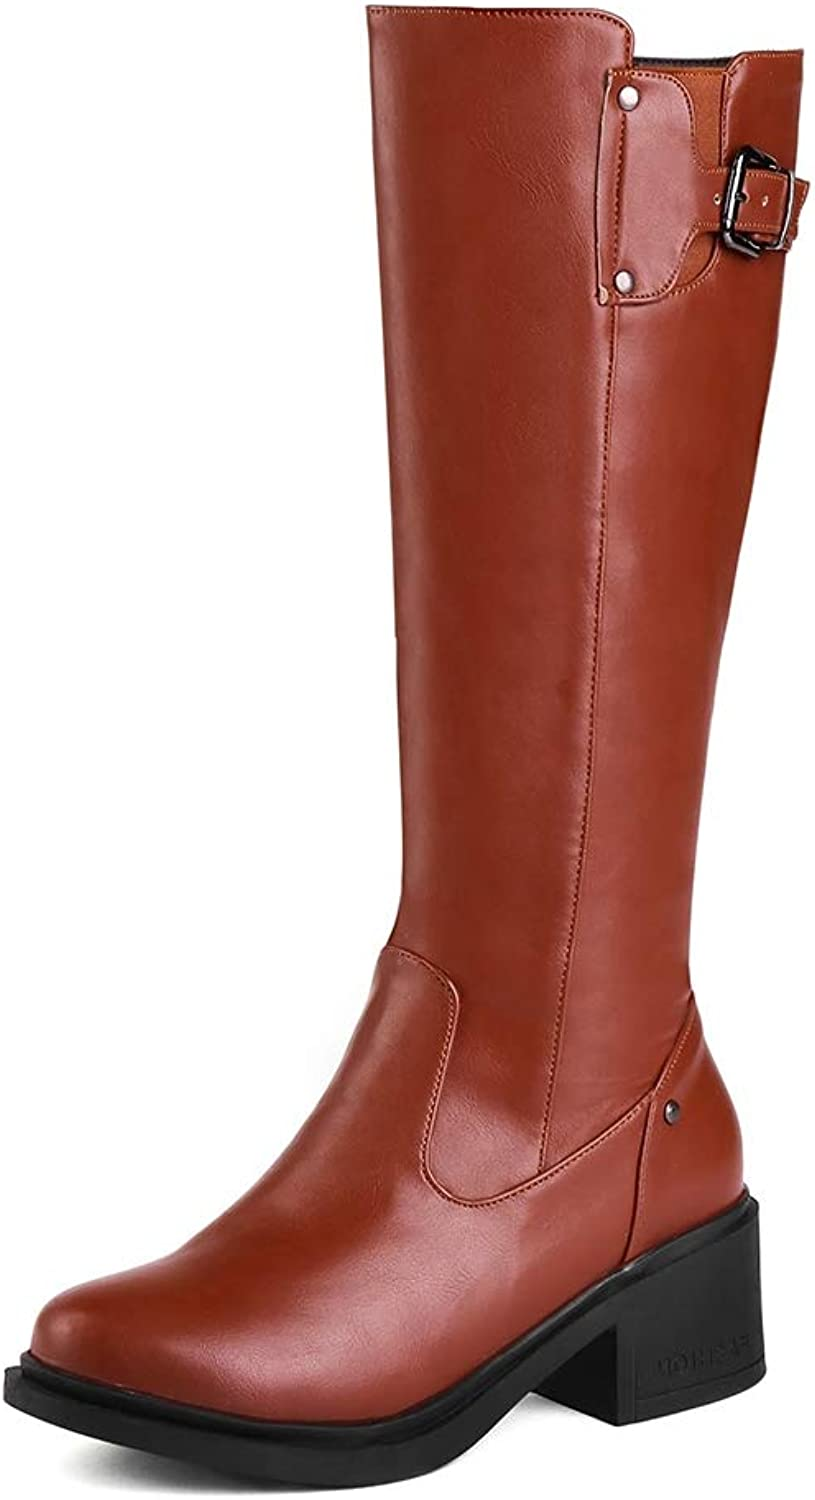 T-JULY Women Winter Boots Fashion Warm Knee-High shoes